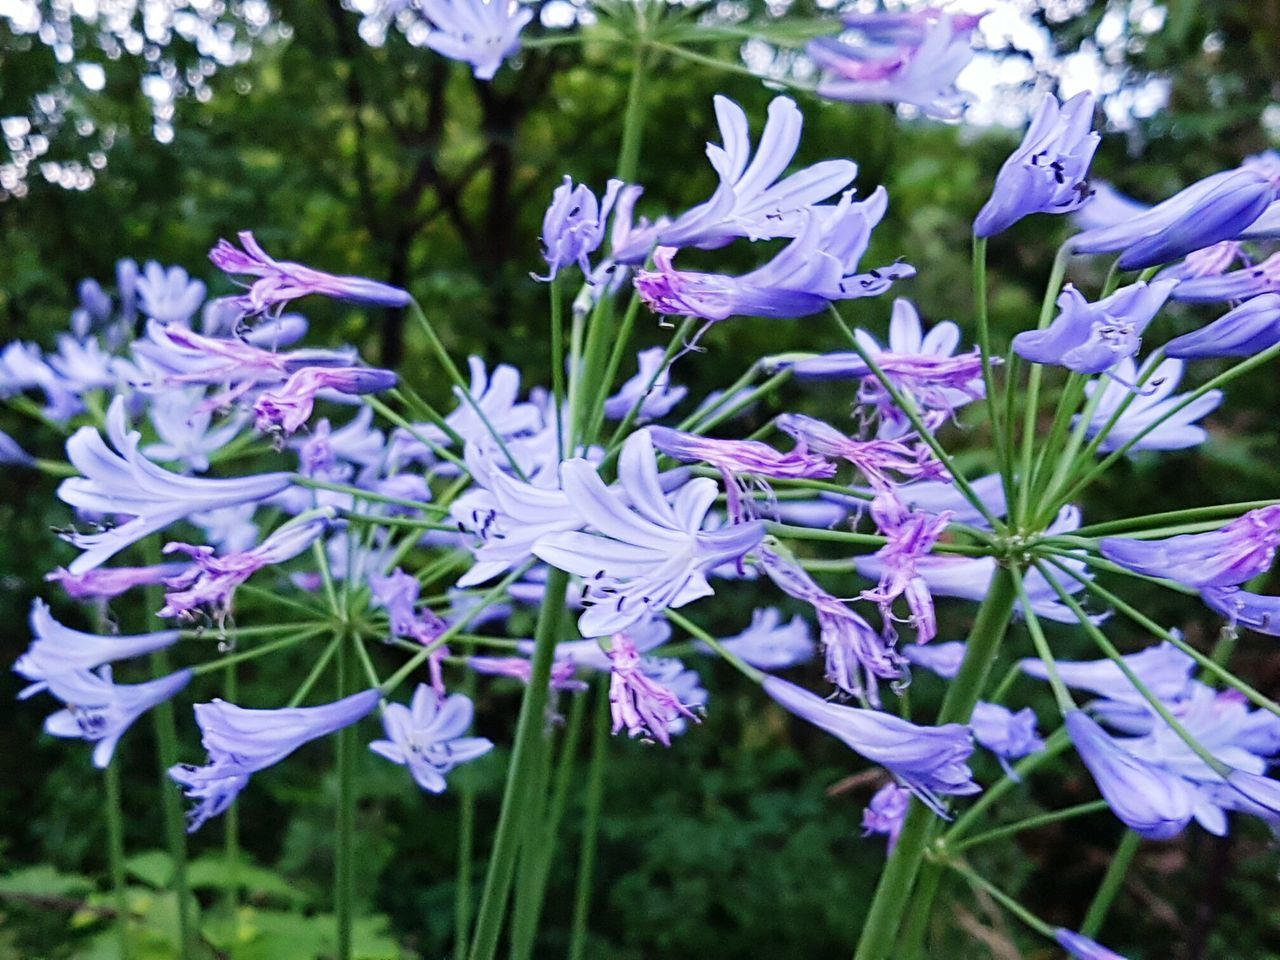 Flower Nature Beauty In Nature Focus On Foreground Plant Purple Blue Blue Flowers Agapanthus Flower Head Close-up